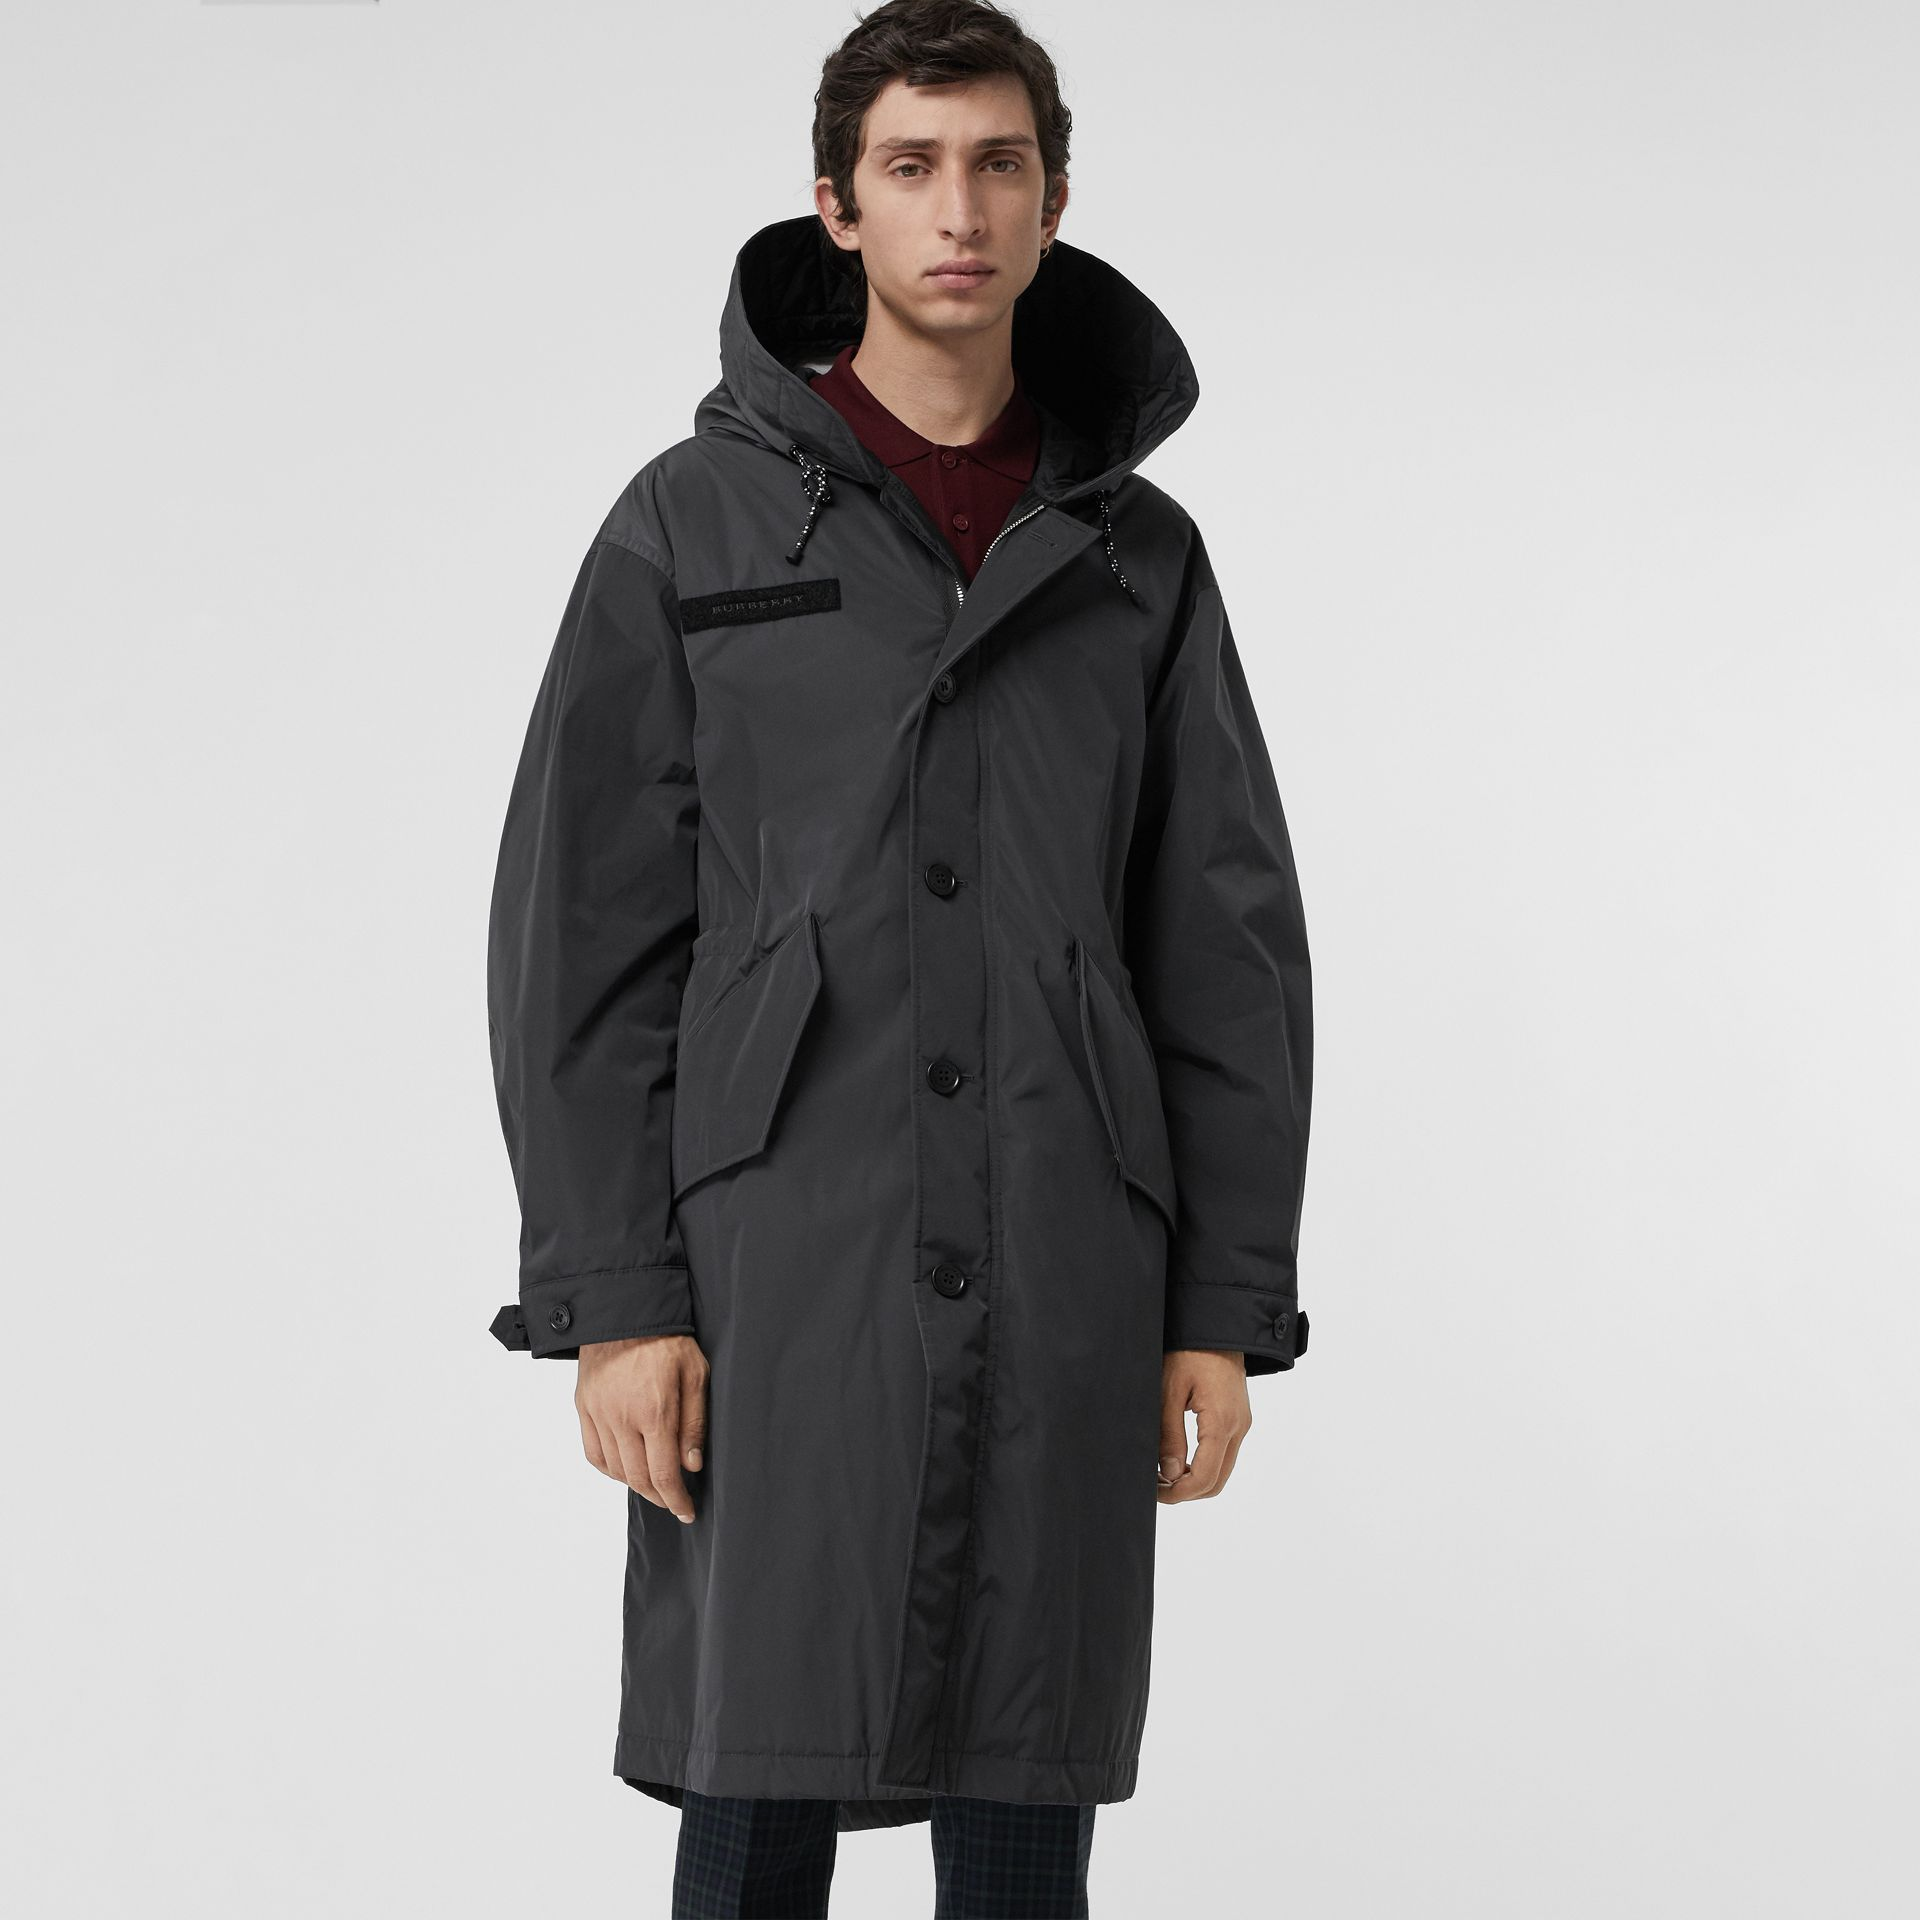 Parka en nylon technique matelassée (Anthracite Sombre) - Homme | Burberry Canada - photo de la galerie 5